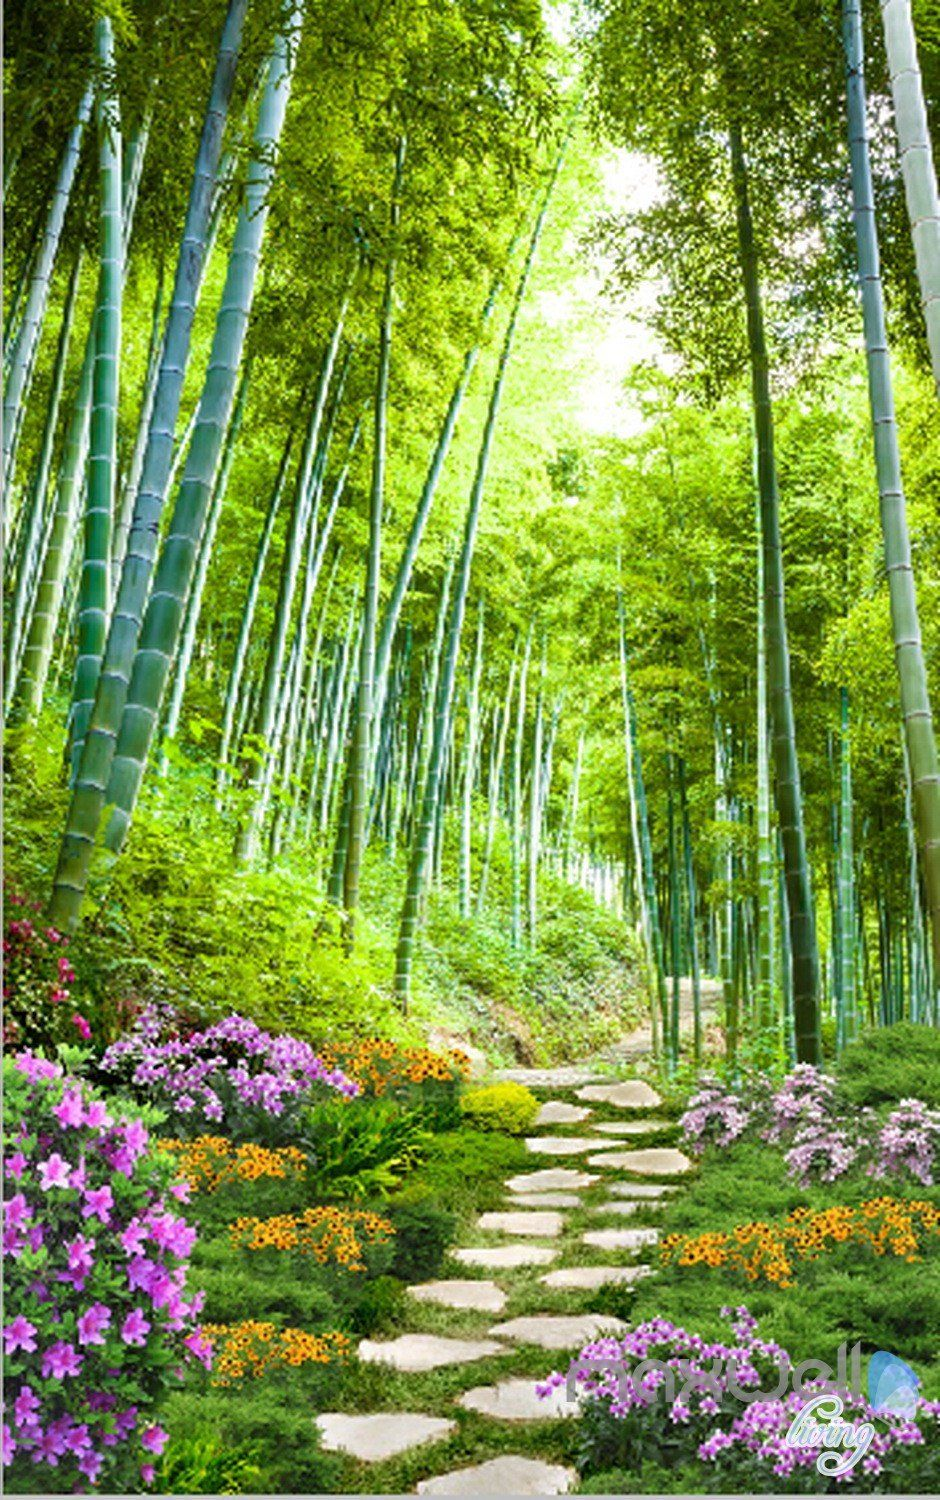 3D Bamboo Forest Flower Corridor Entrance Wall Mural Decals